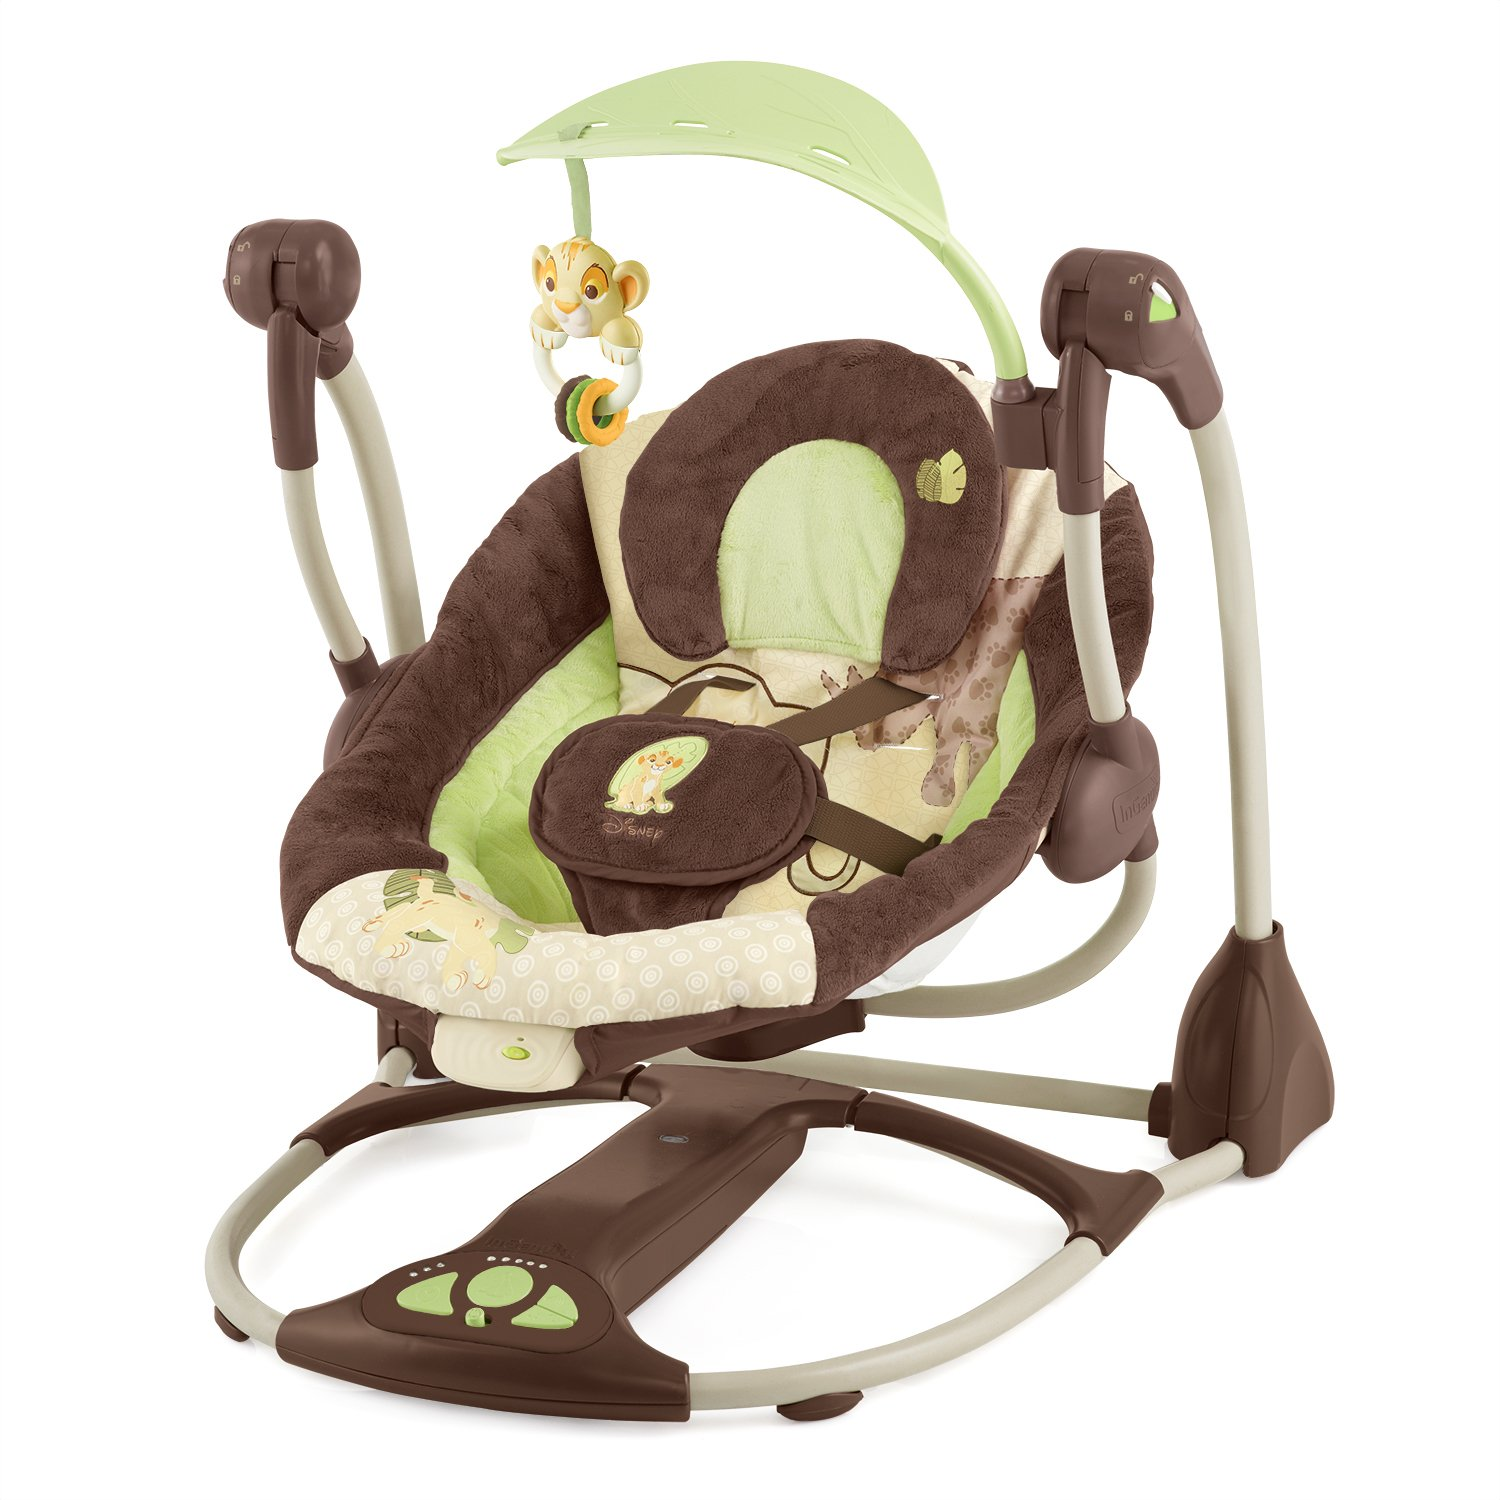 Disney Premier Convert Me Swing 2 Seat The Lion King Discontinued By Manufacturer Stationary Baby Swings Baby